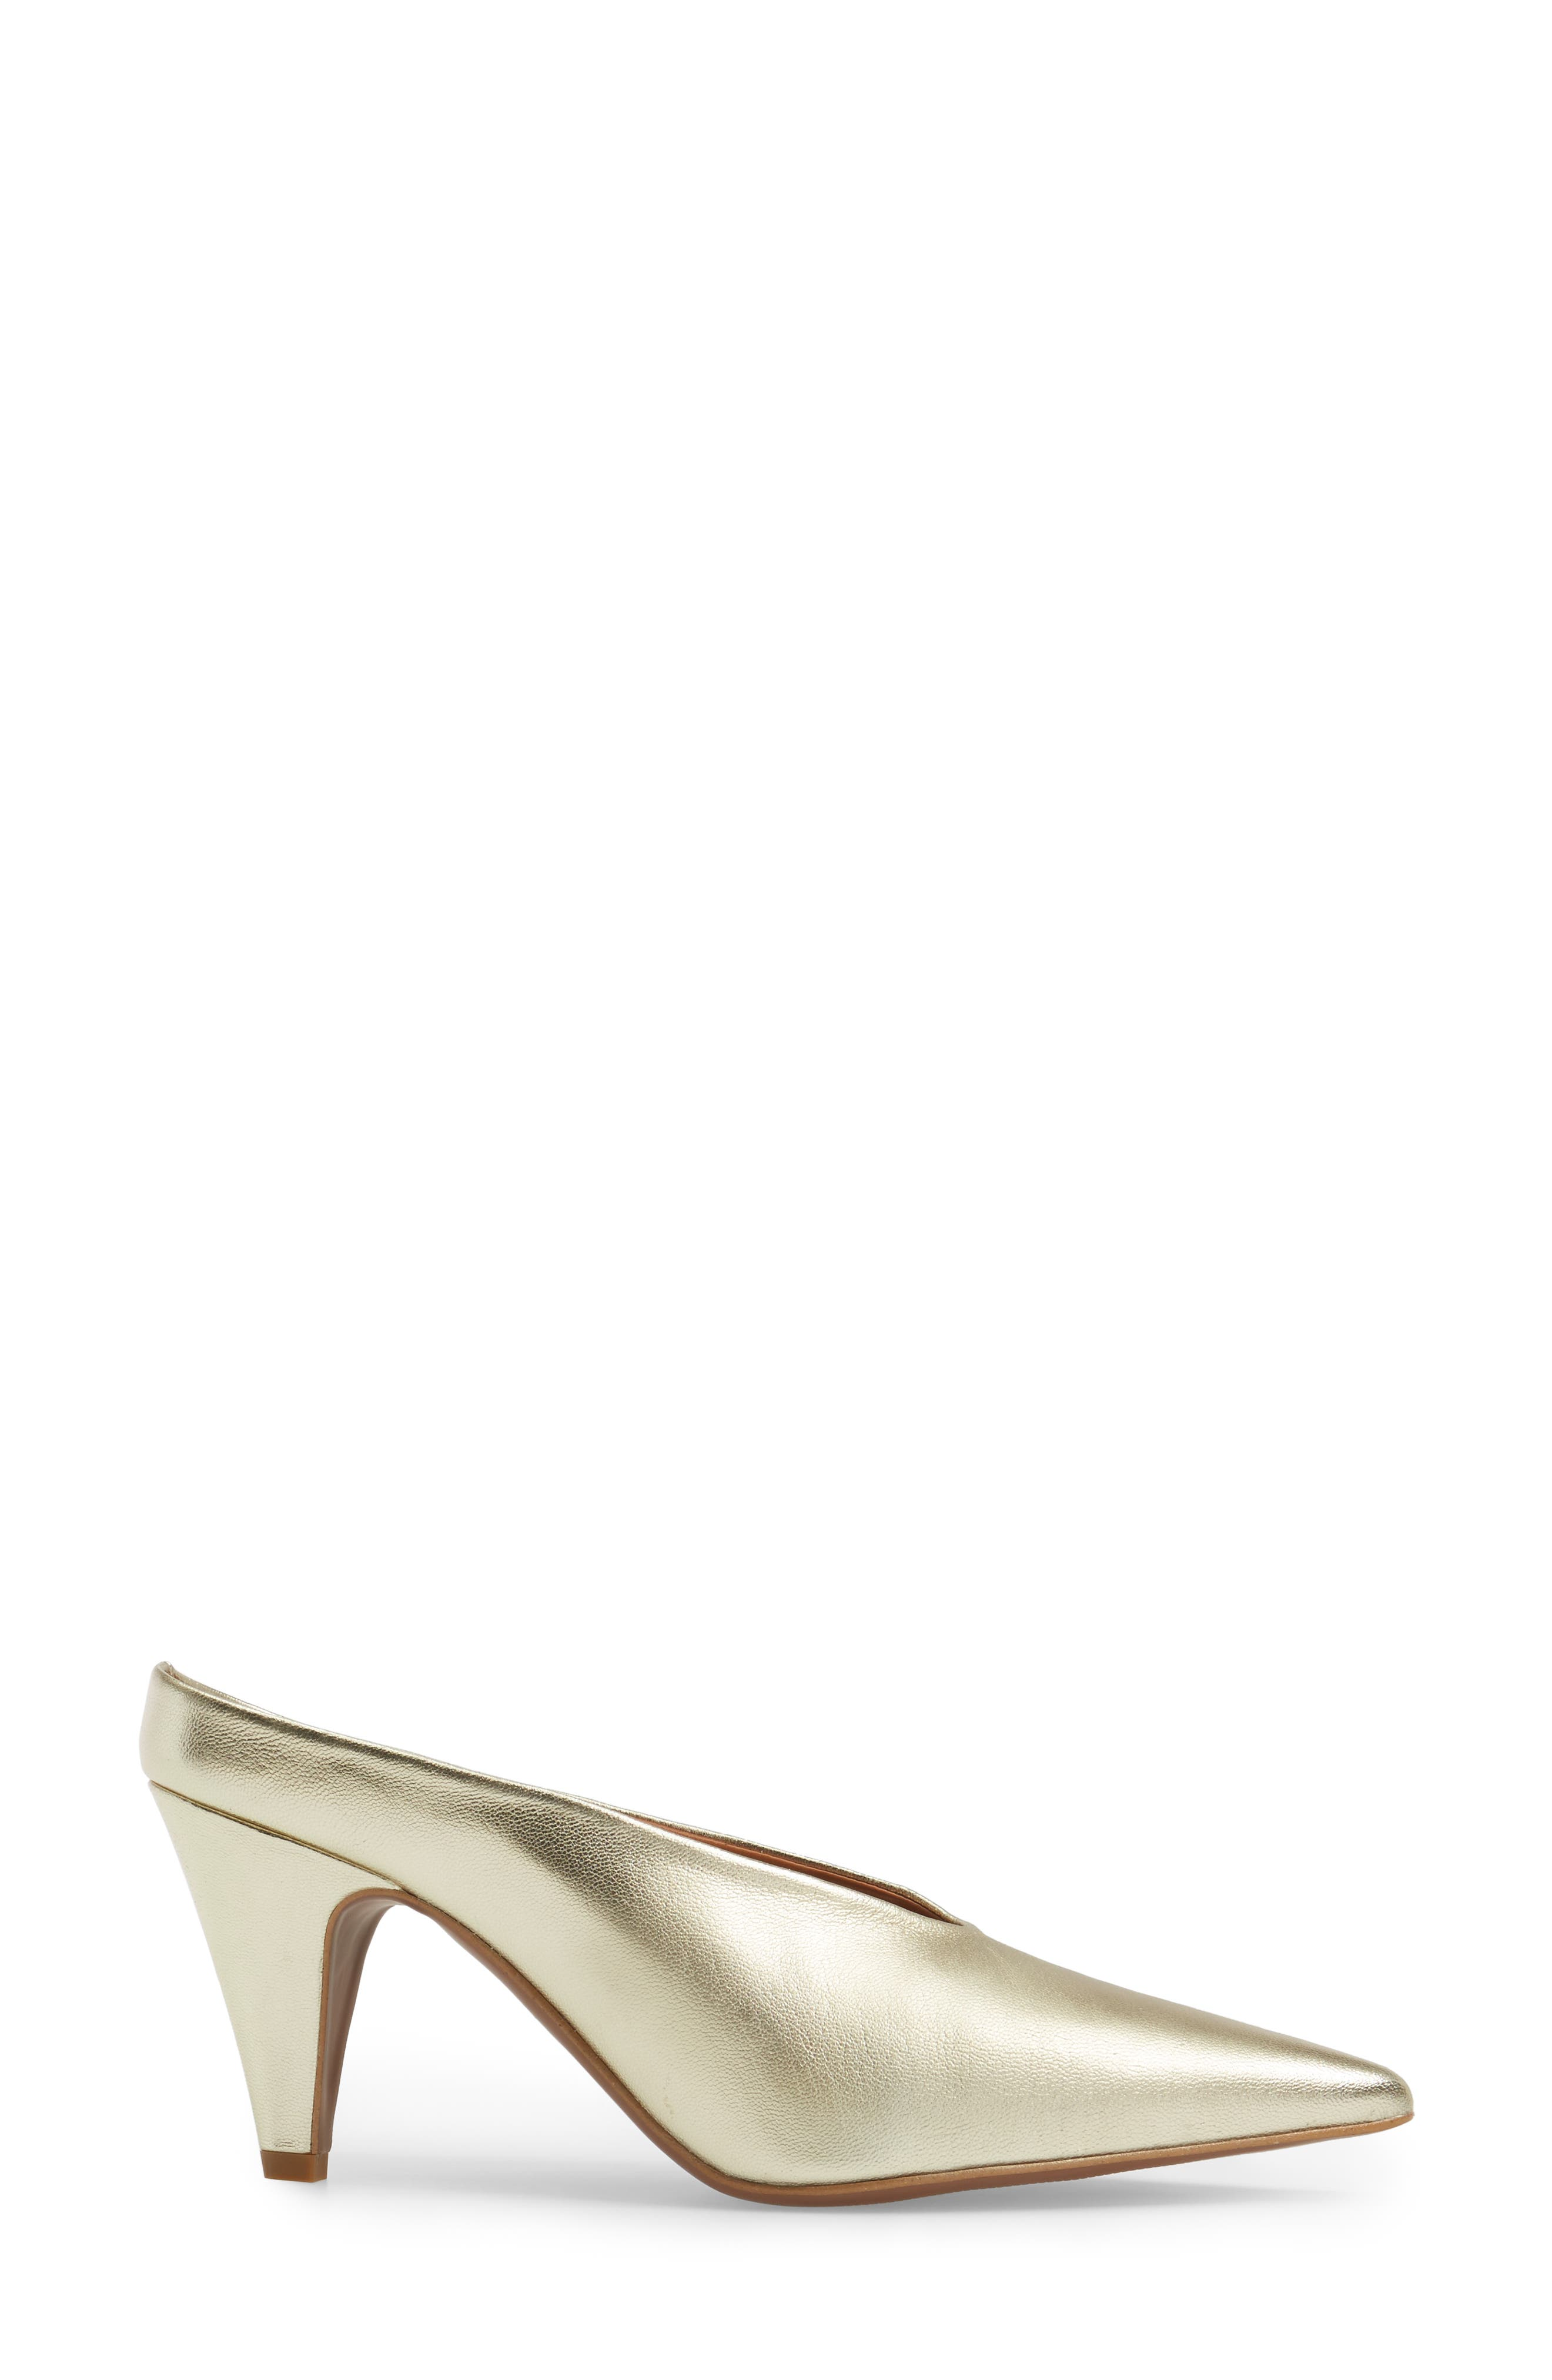 Juicy Pointy Toe Pump,                             Alternate thumbnail 3, color,                             Gold Leather